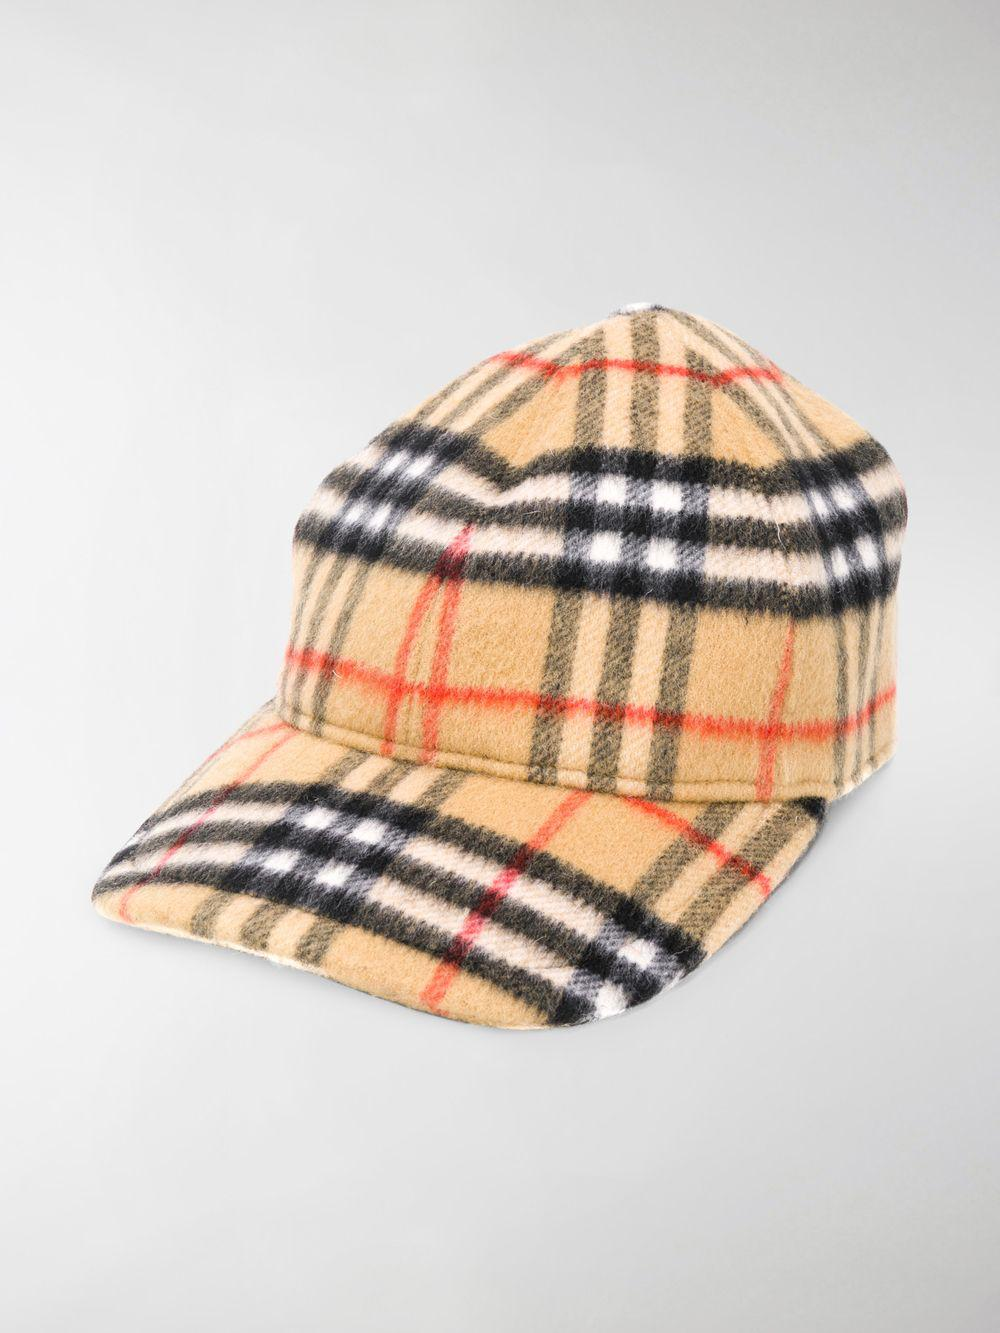 Lyst - Burberry Vintage Check Wool Baseball Cap in Yellow for Men 18307938152f